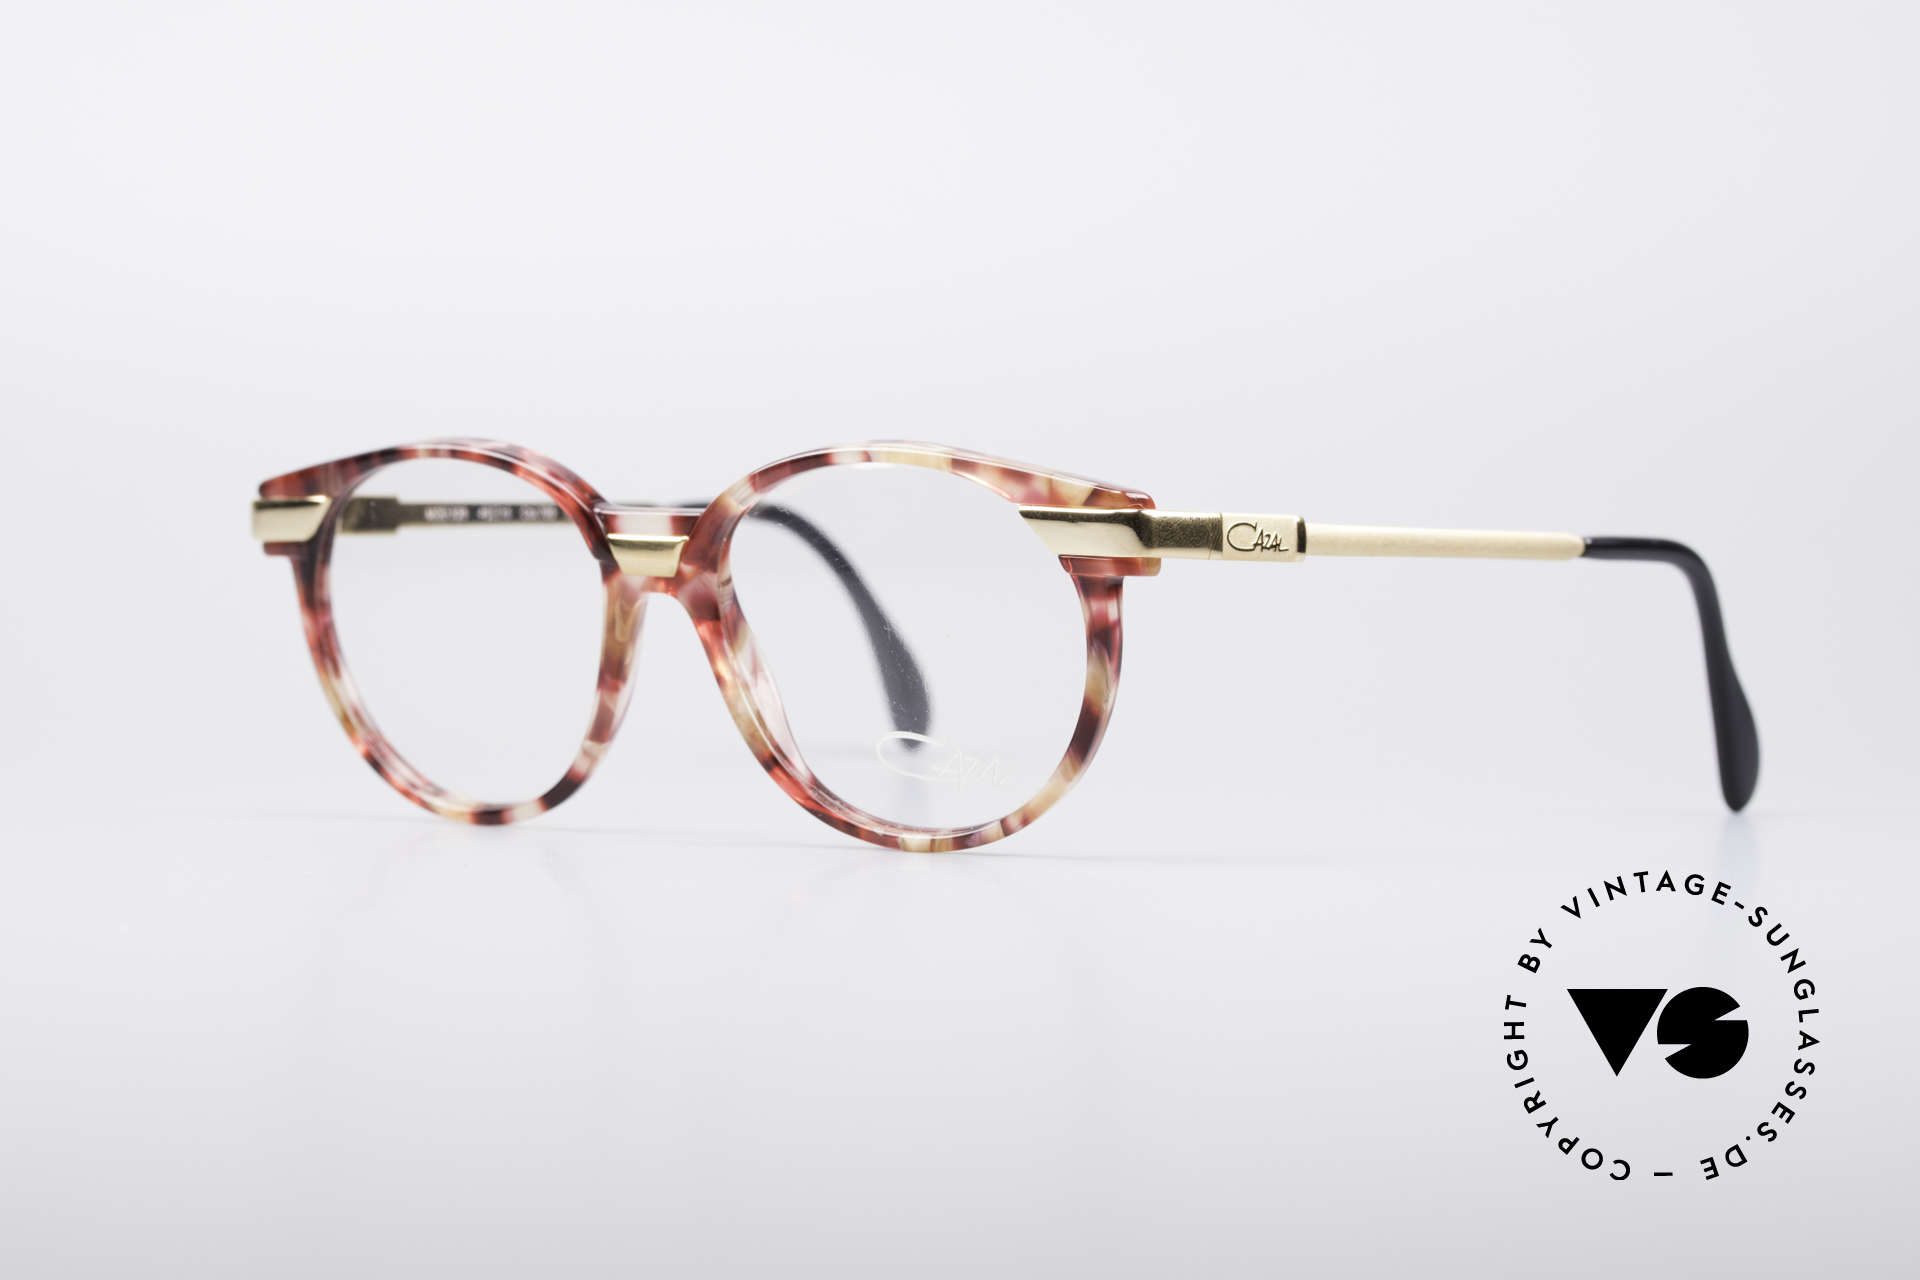 Cazal 338 Small Round Vintage Frame, creative & discreet frame-coloring; at the same time, Made for Men and Women